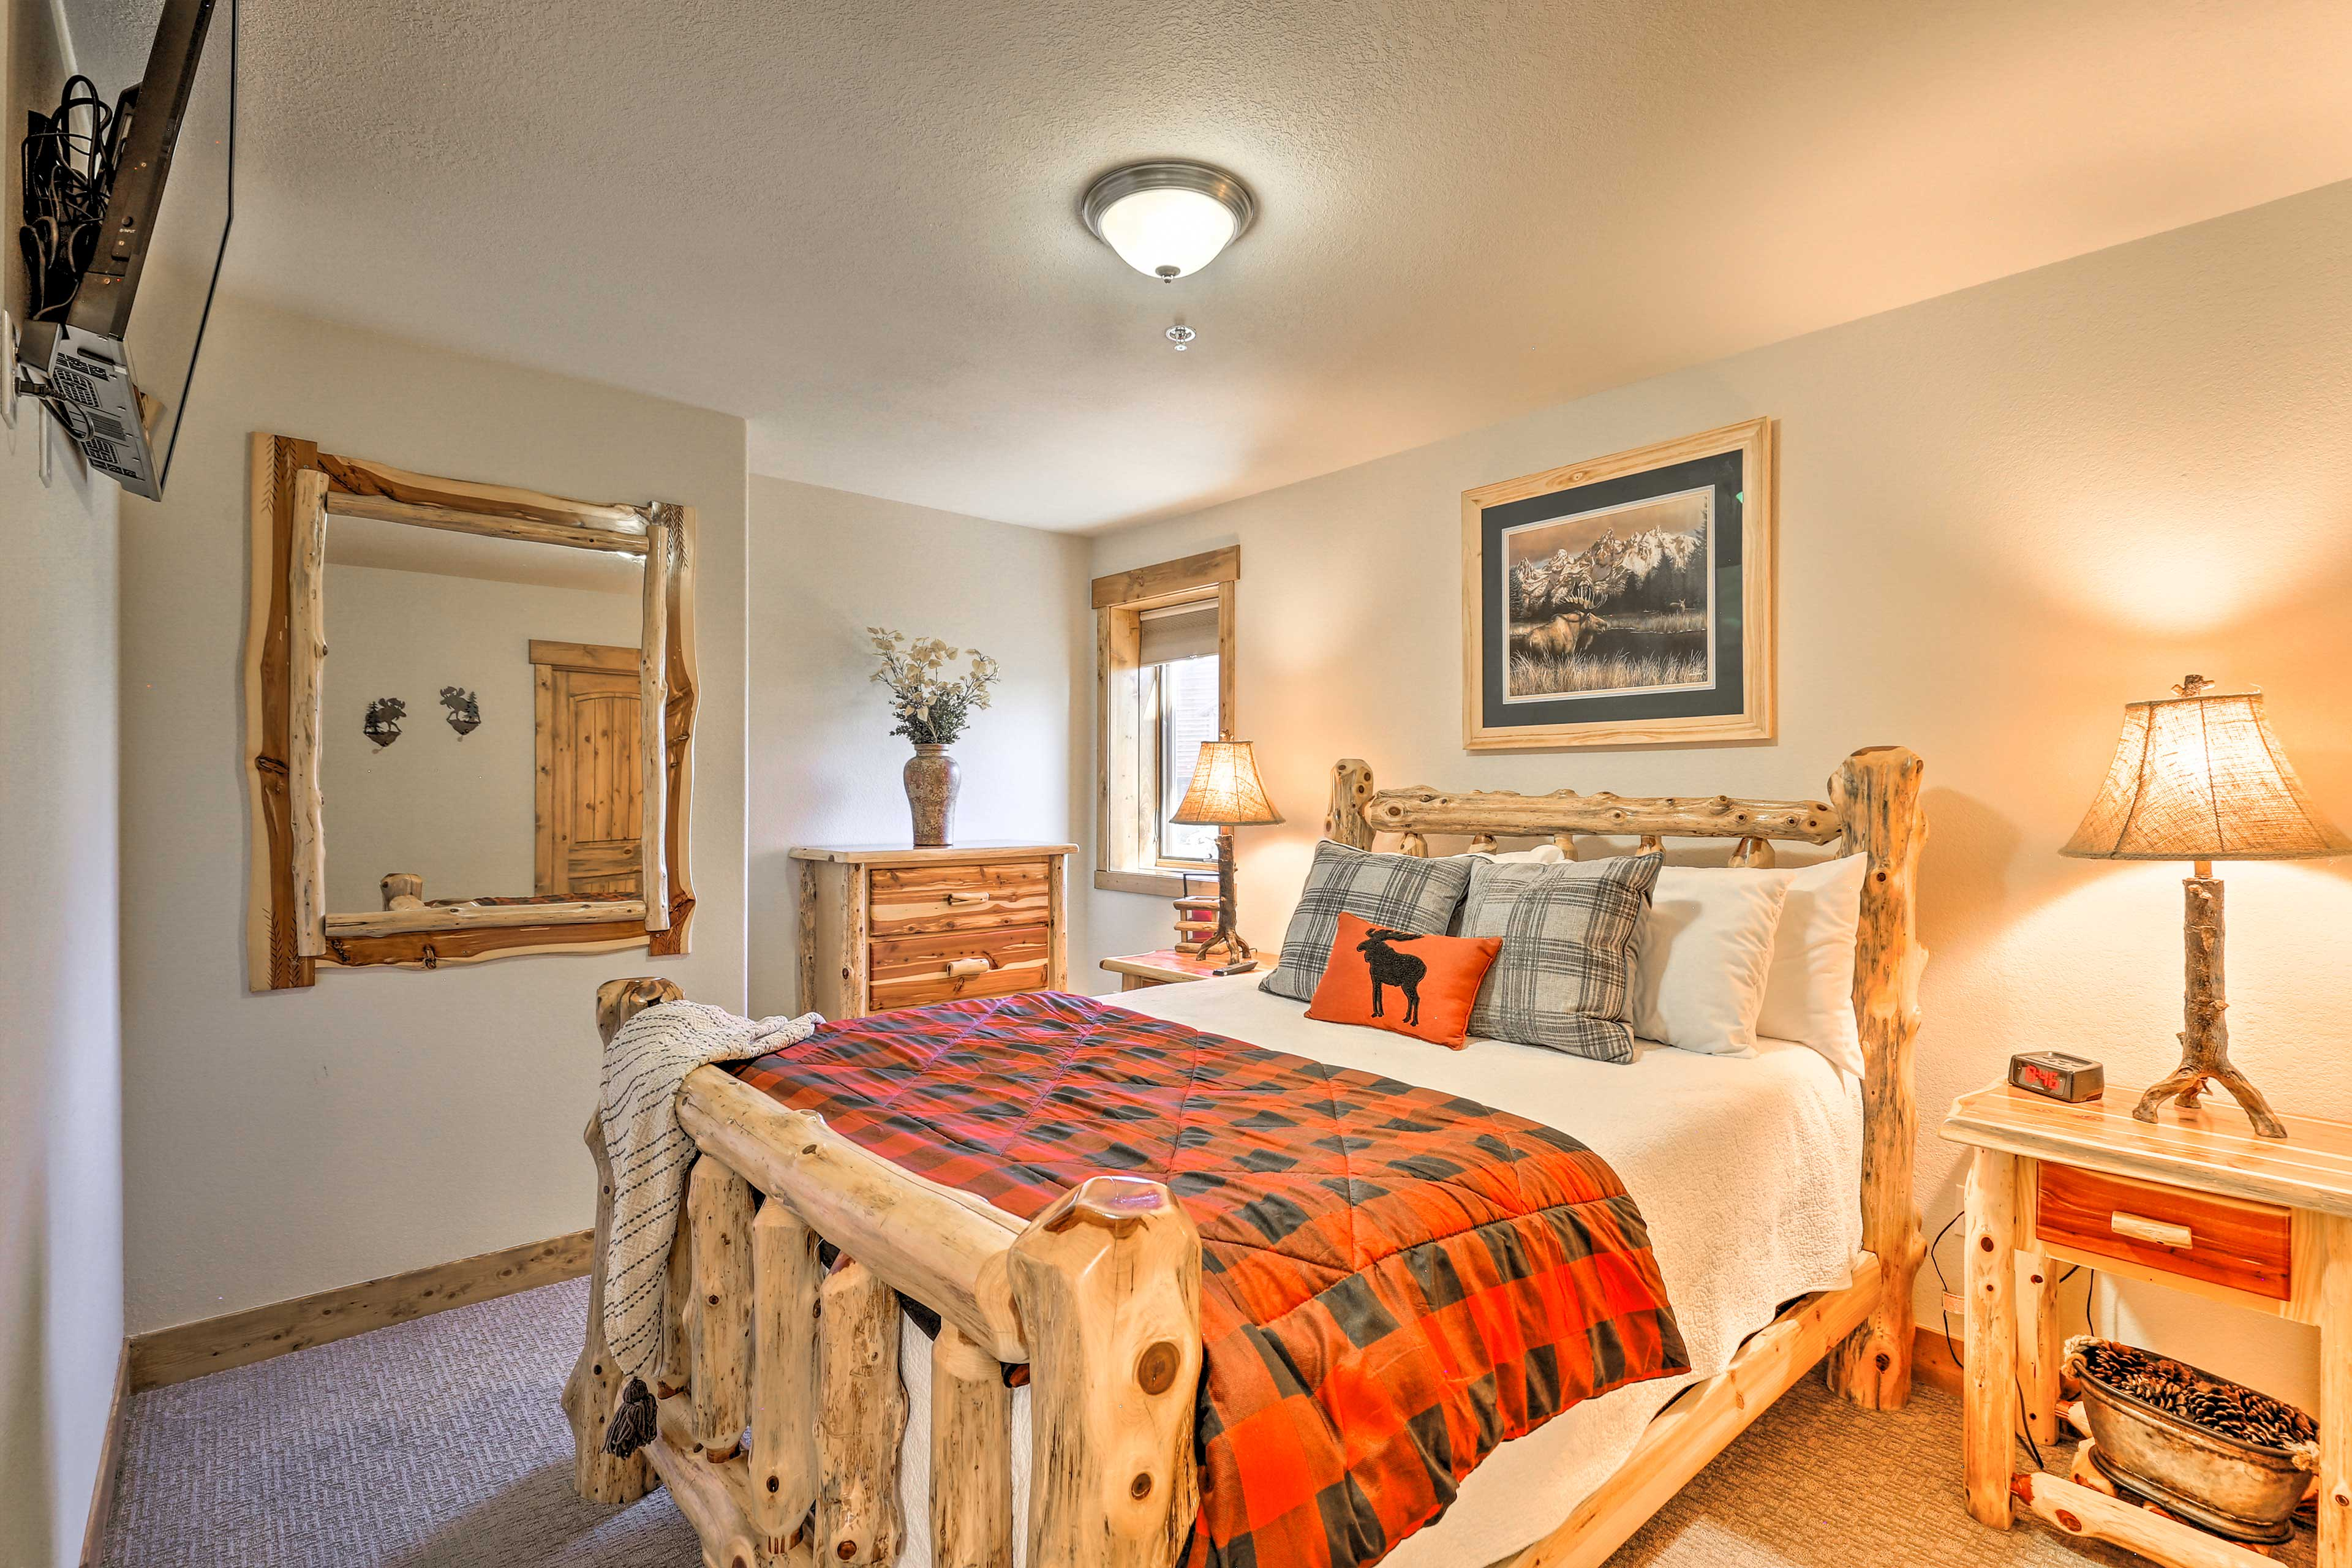 Two guests can claim the queen bed in the bedroom.